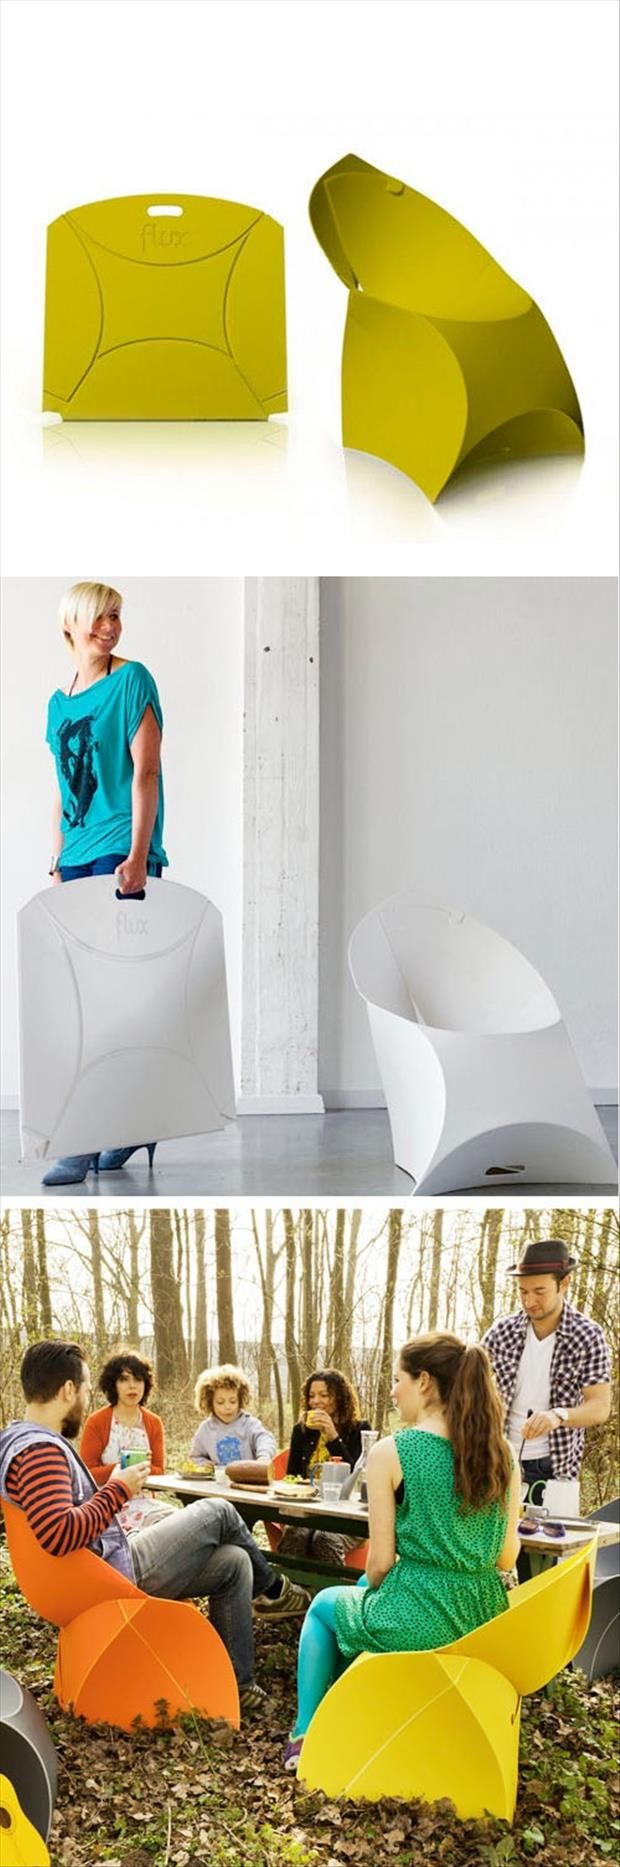 Simple ideas that are borderline genius 28 pics inventions funny pictures about flux origami chair folds flat for easy storage oh and cool pics about flux origami chair folds flat for easy storage jeuxipadfo Gallery